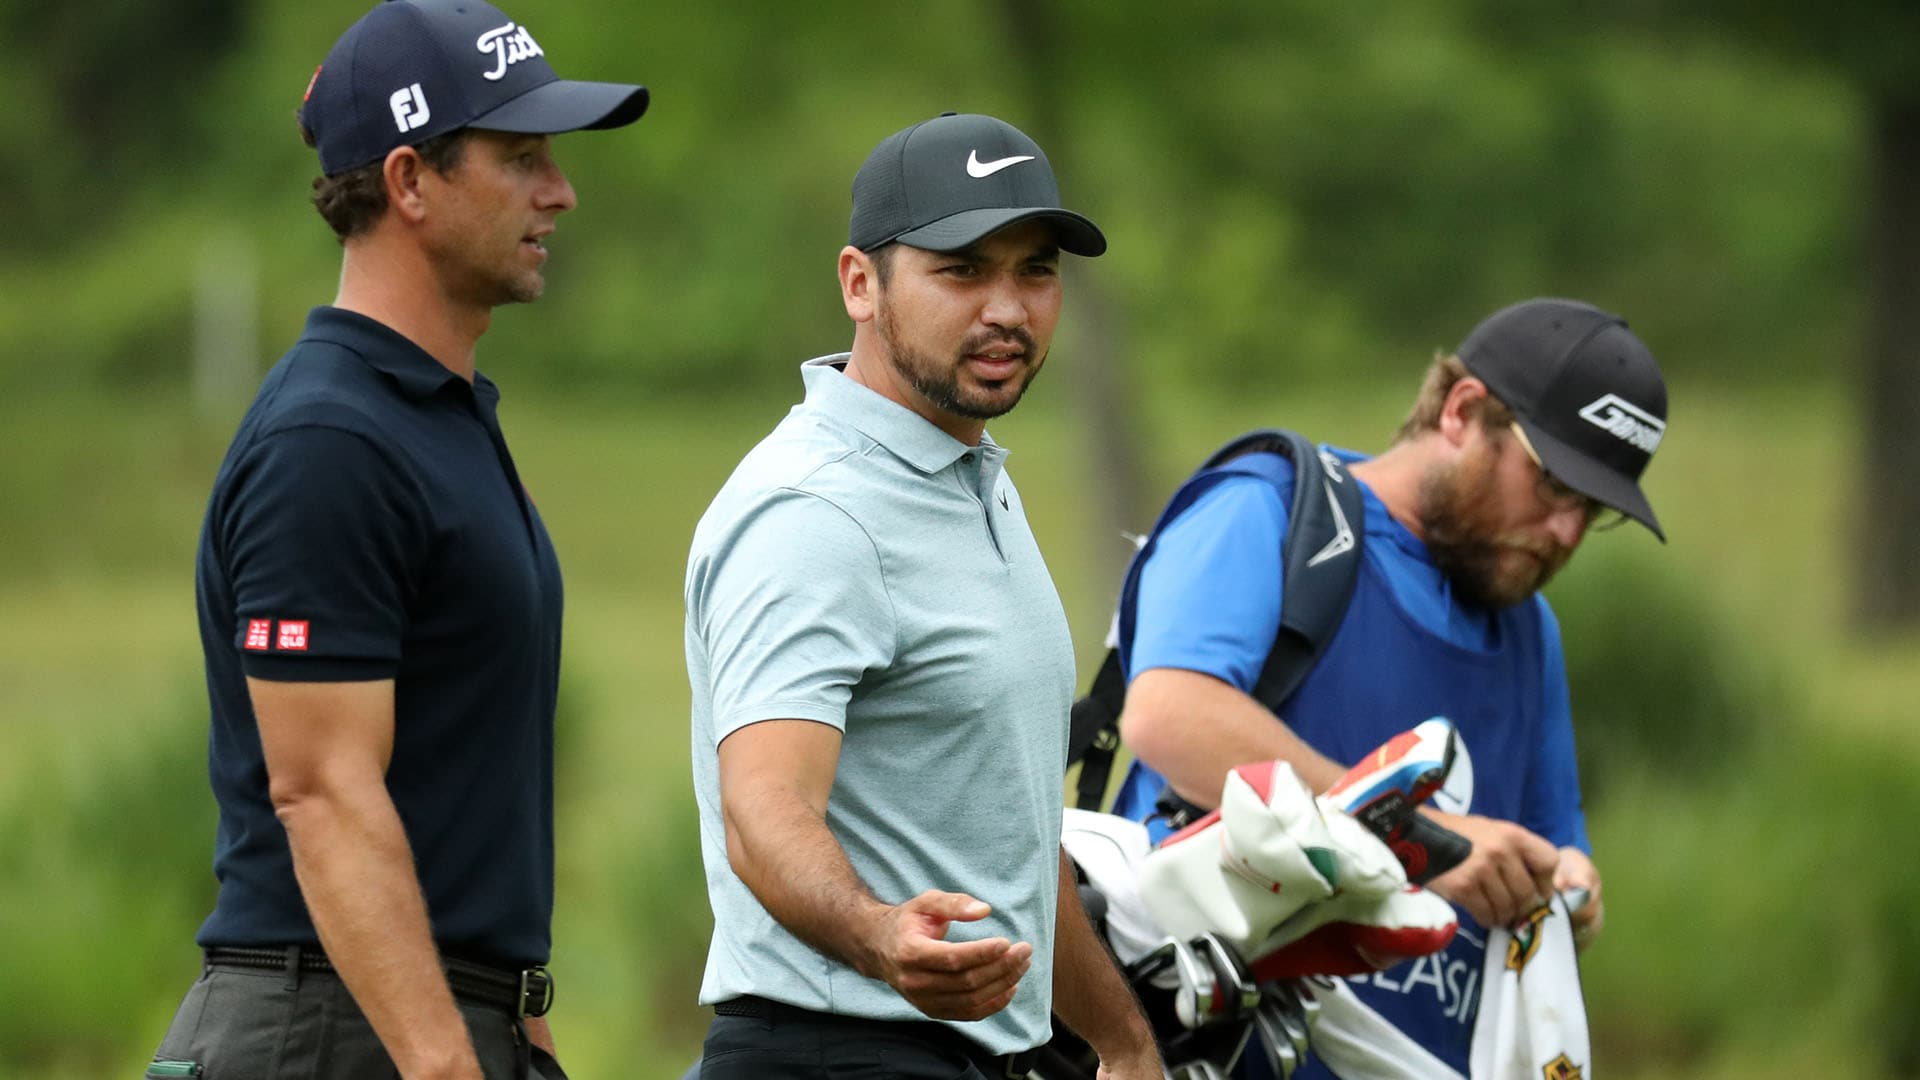 Jason Day Excited For Olympic Opportunity Adam Scott Not So Much